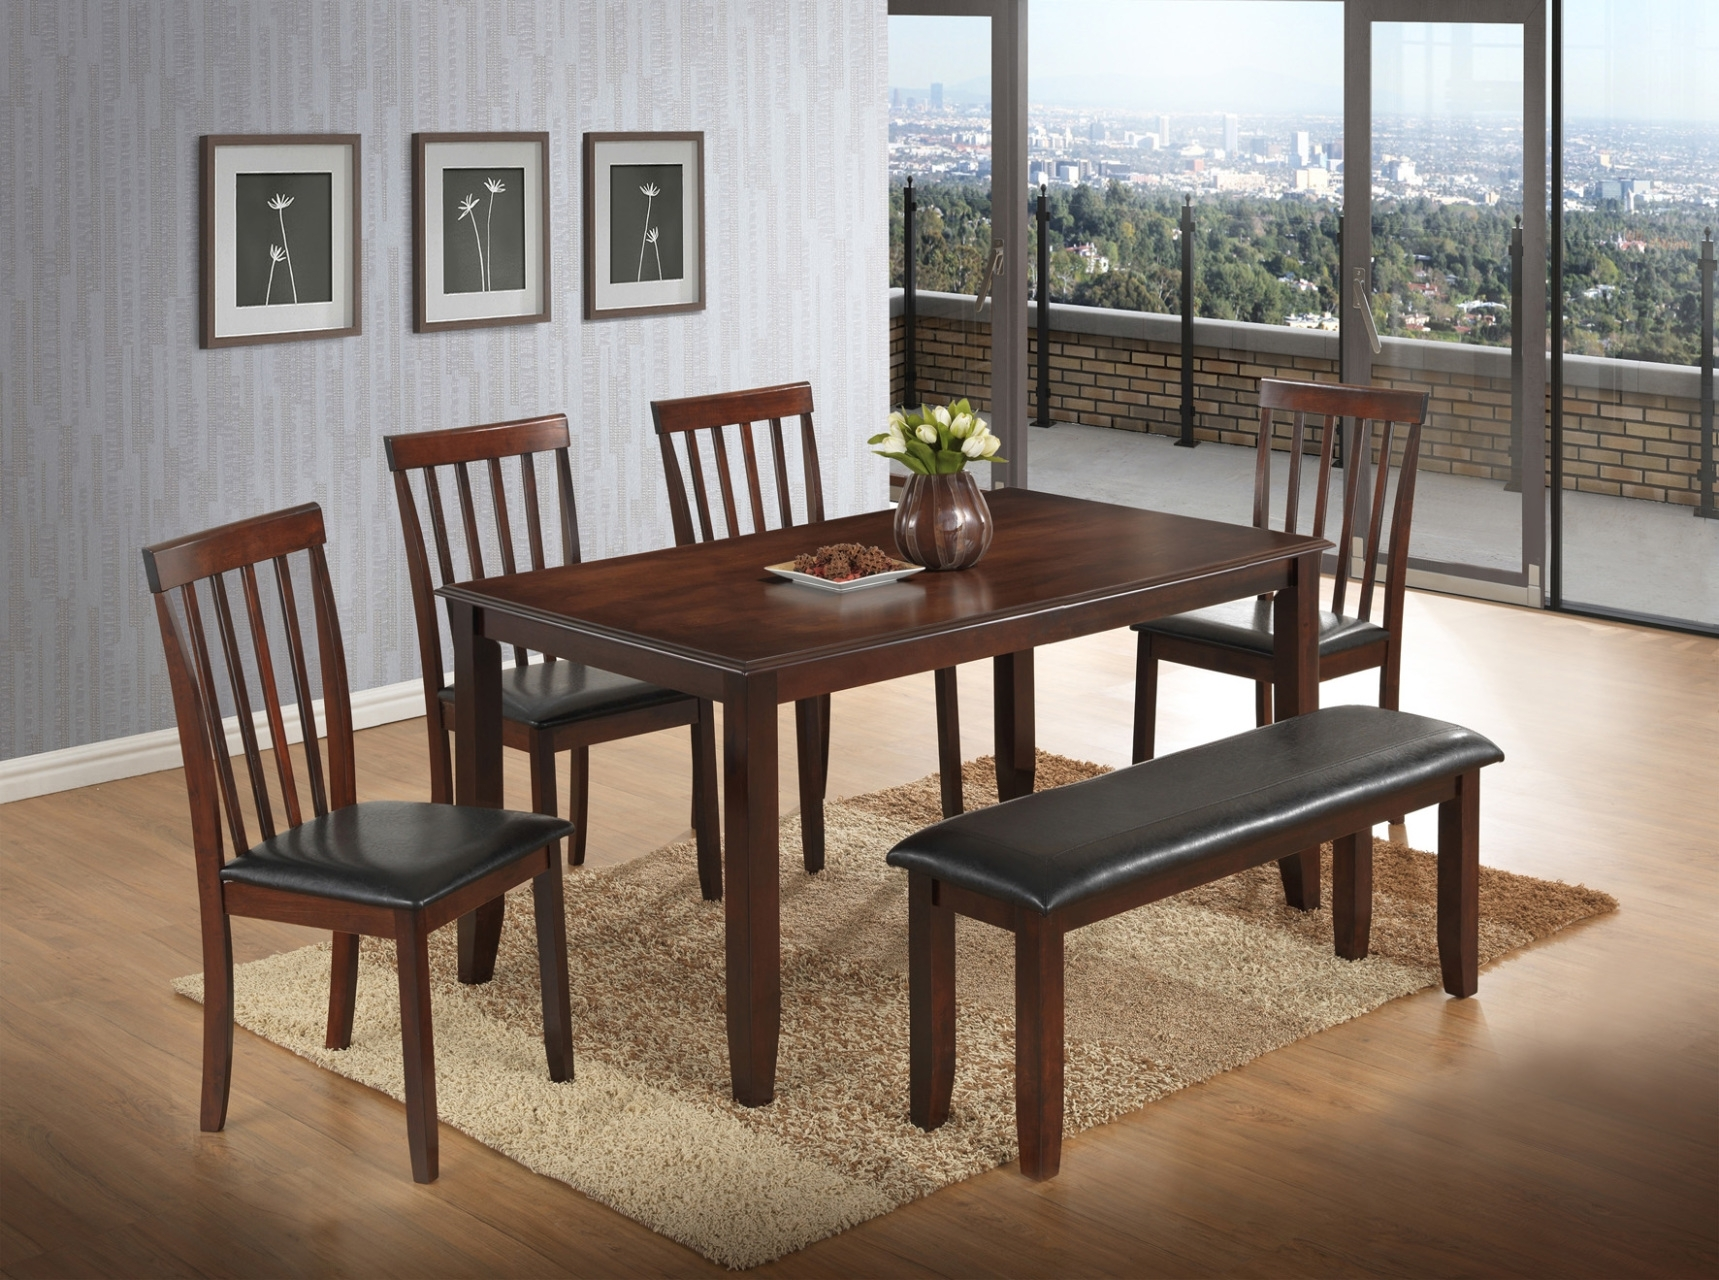 Tables, Chairs, & Servers – Hello Furniture For Most Current Jaxon Grey 5 Piece Round Extension Dining Sets With Wood Chairs (Image 19 of 20)